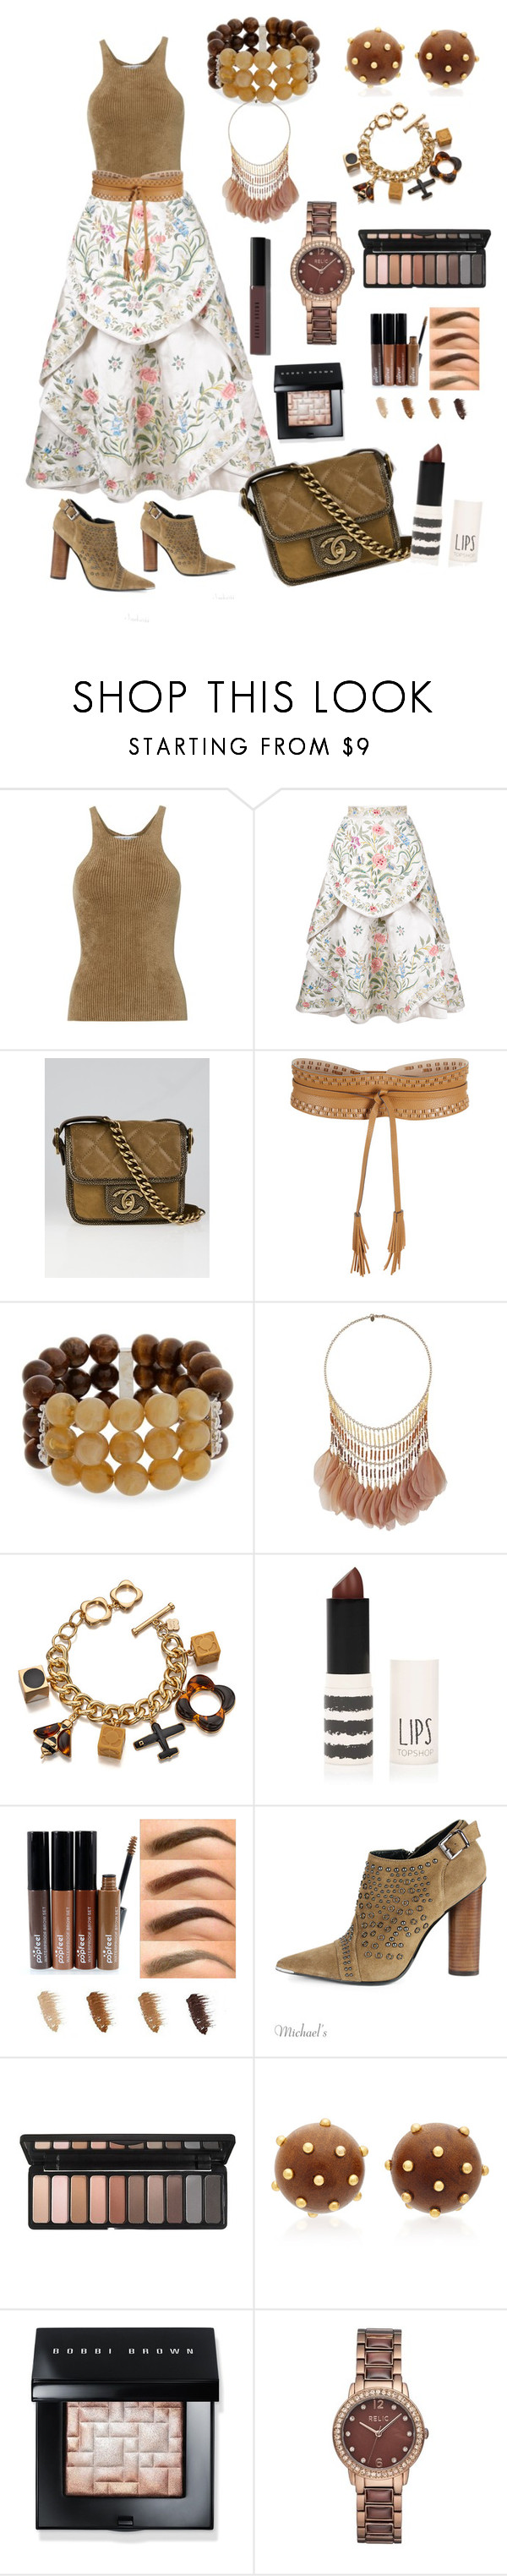 """""""Brown 2"""" by luisferni-1988 ❤ liked on Polyvore featuring Helmut Lang, Eavis & Brown, Chanel, BCBGMAXAZRIA, Erica Lyons, Miss Selfridge, Orla Kiely, Topshop, Barbara Bui and Charlotte Russe"""